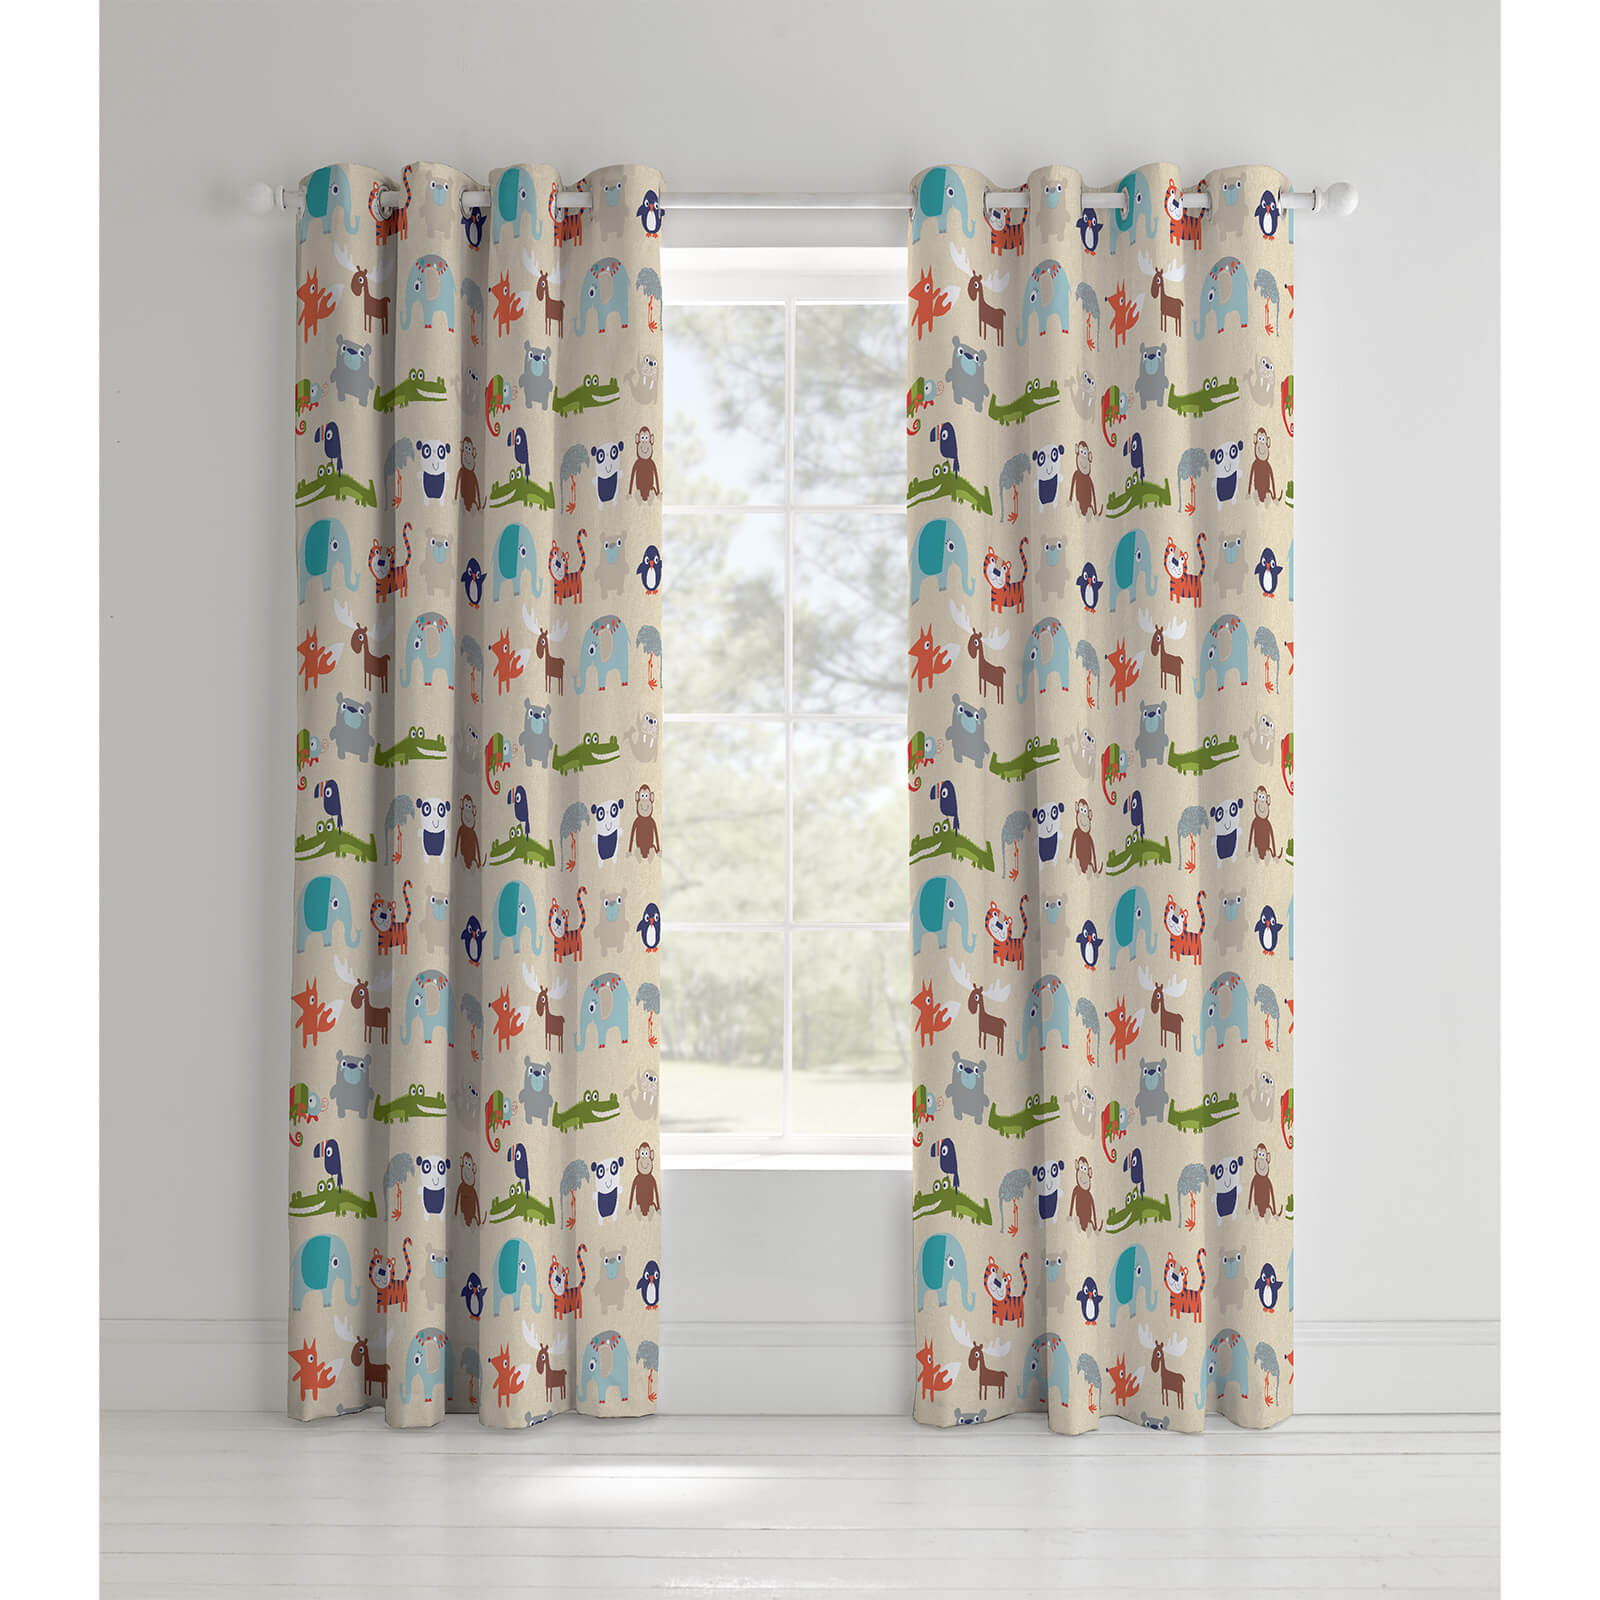 Catherine Lansfield Animal Kingdom Curtains - Multi - 168 x 183cm